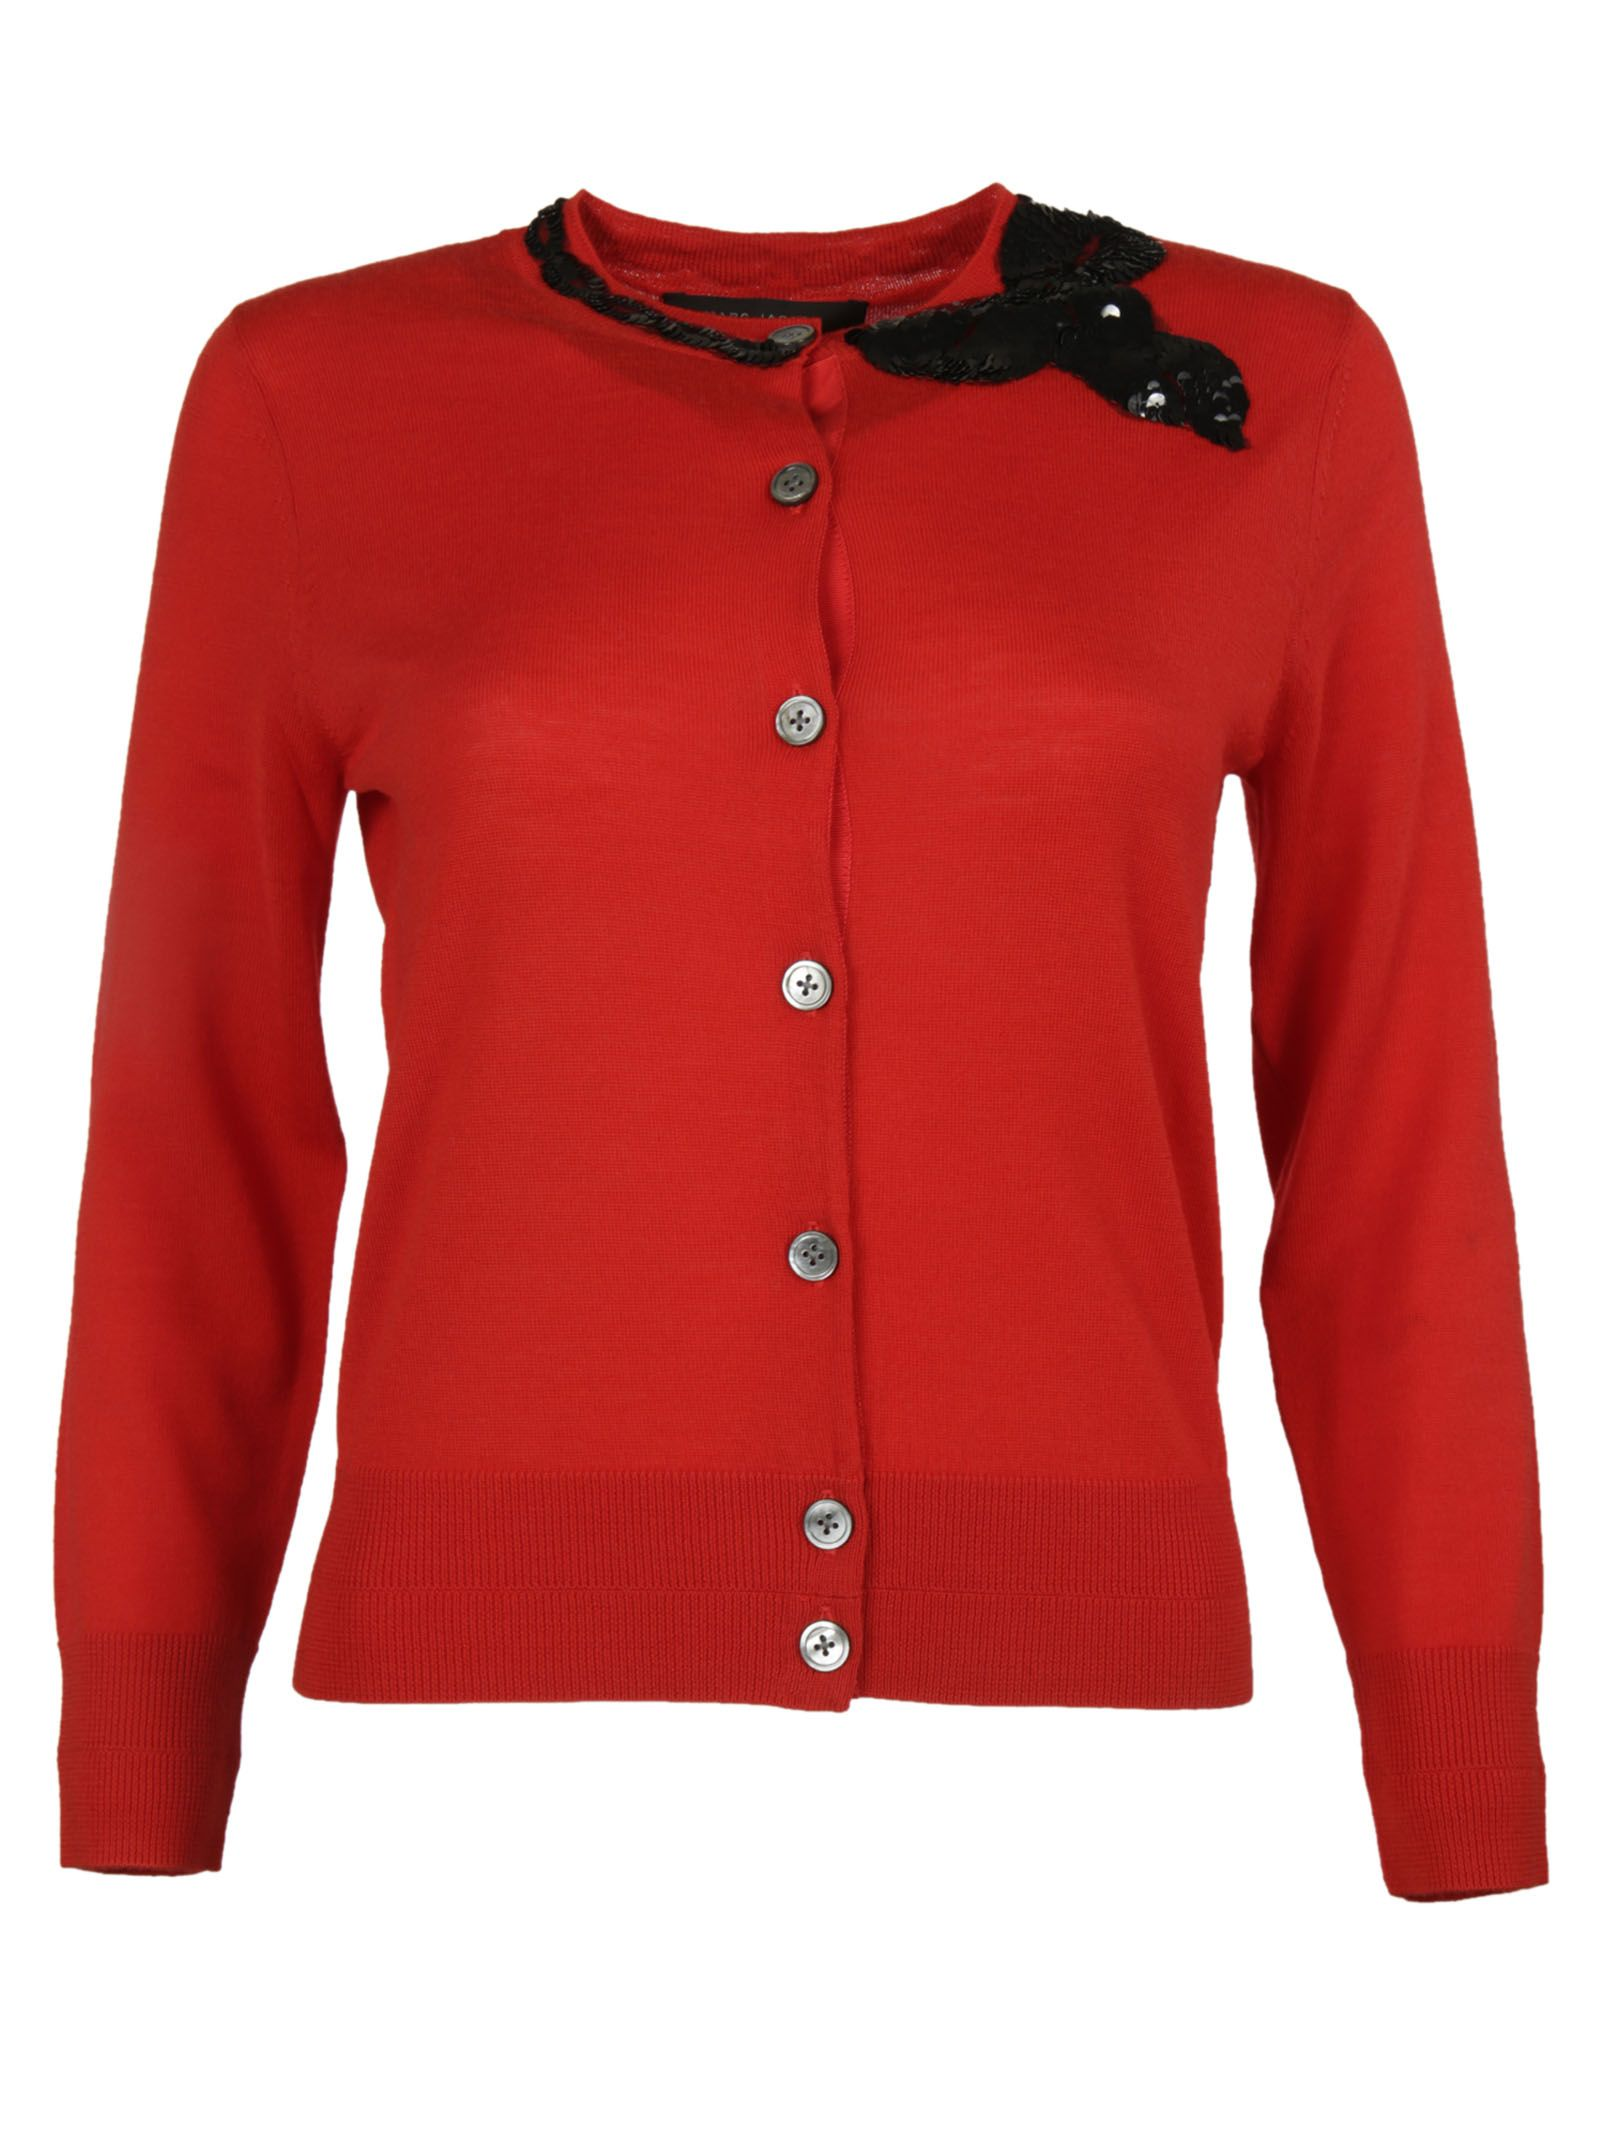 marc jacobs female 250960 red bow detail cardigan